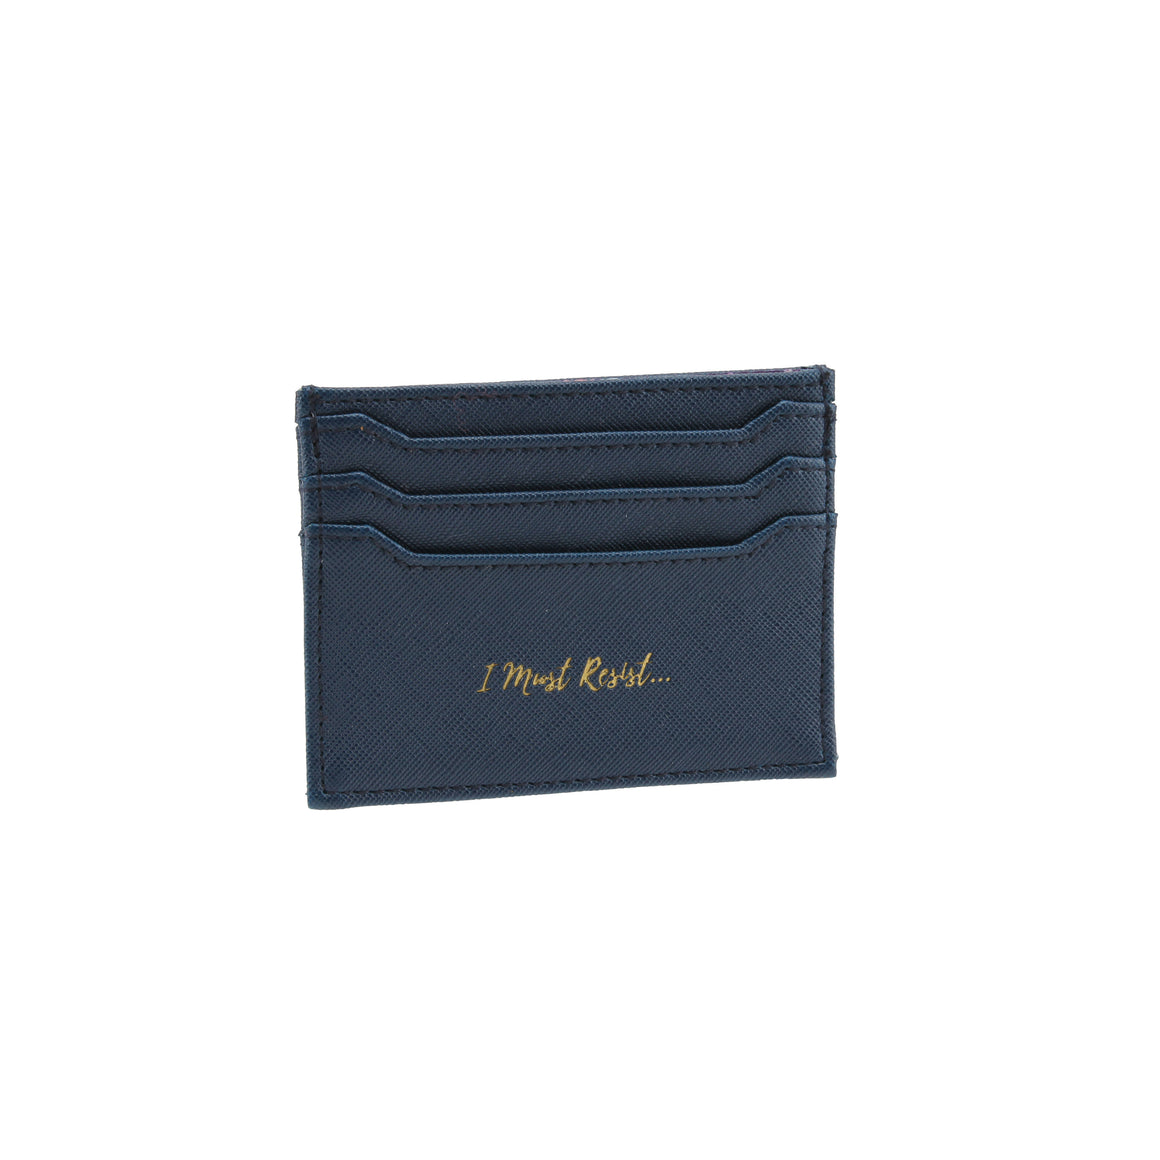 Willow & Rose 'I Must Resist...' Navy Card Holder